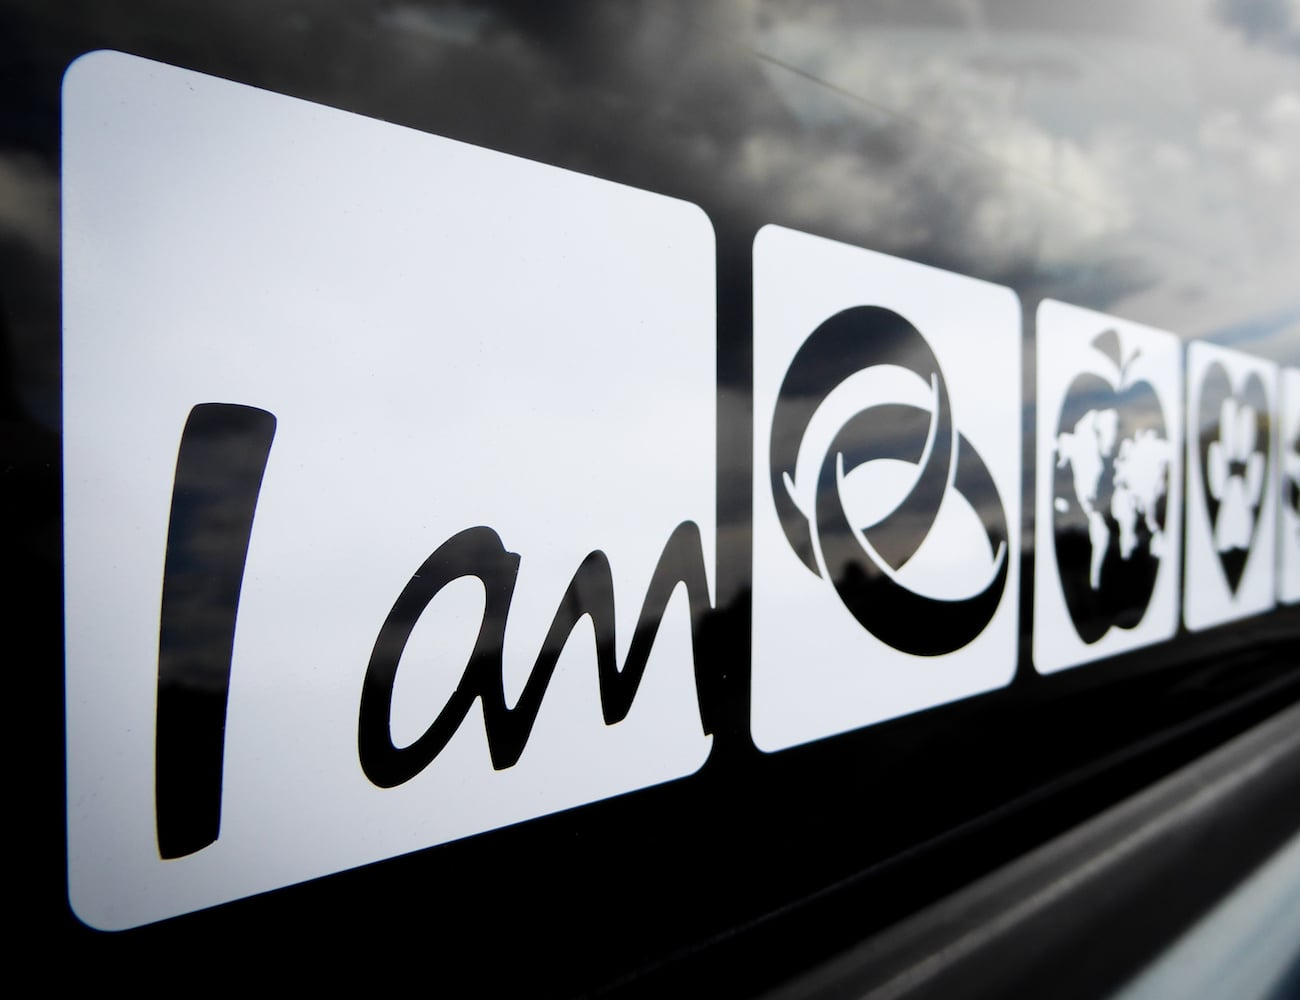 I Am Decals – Personalized Decals and T-Shirts